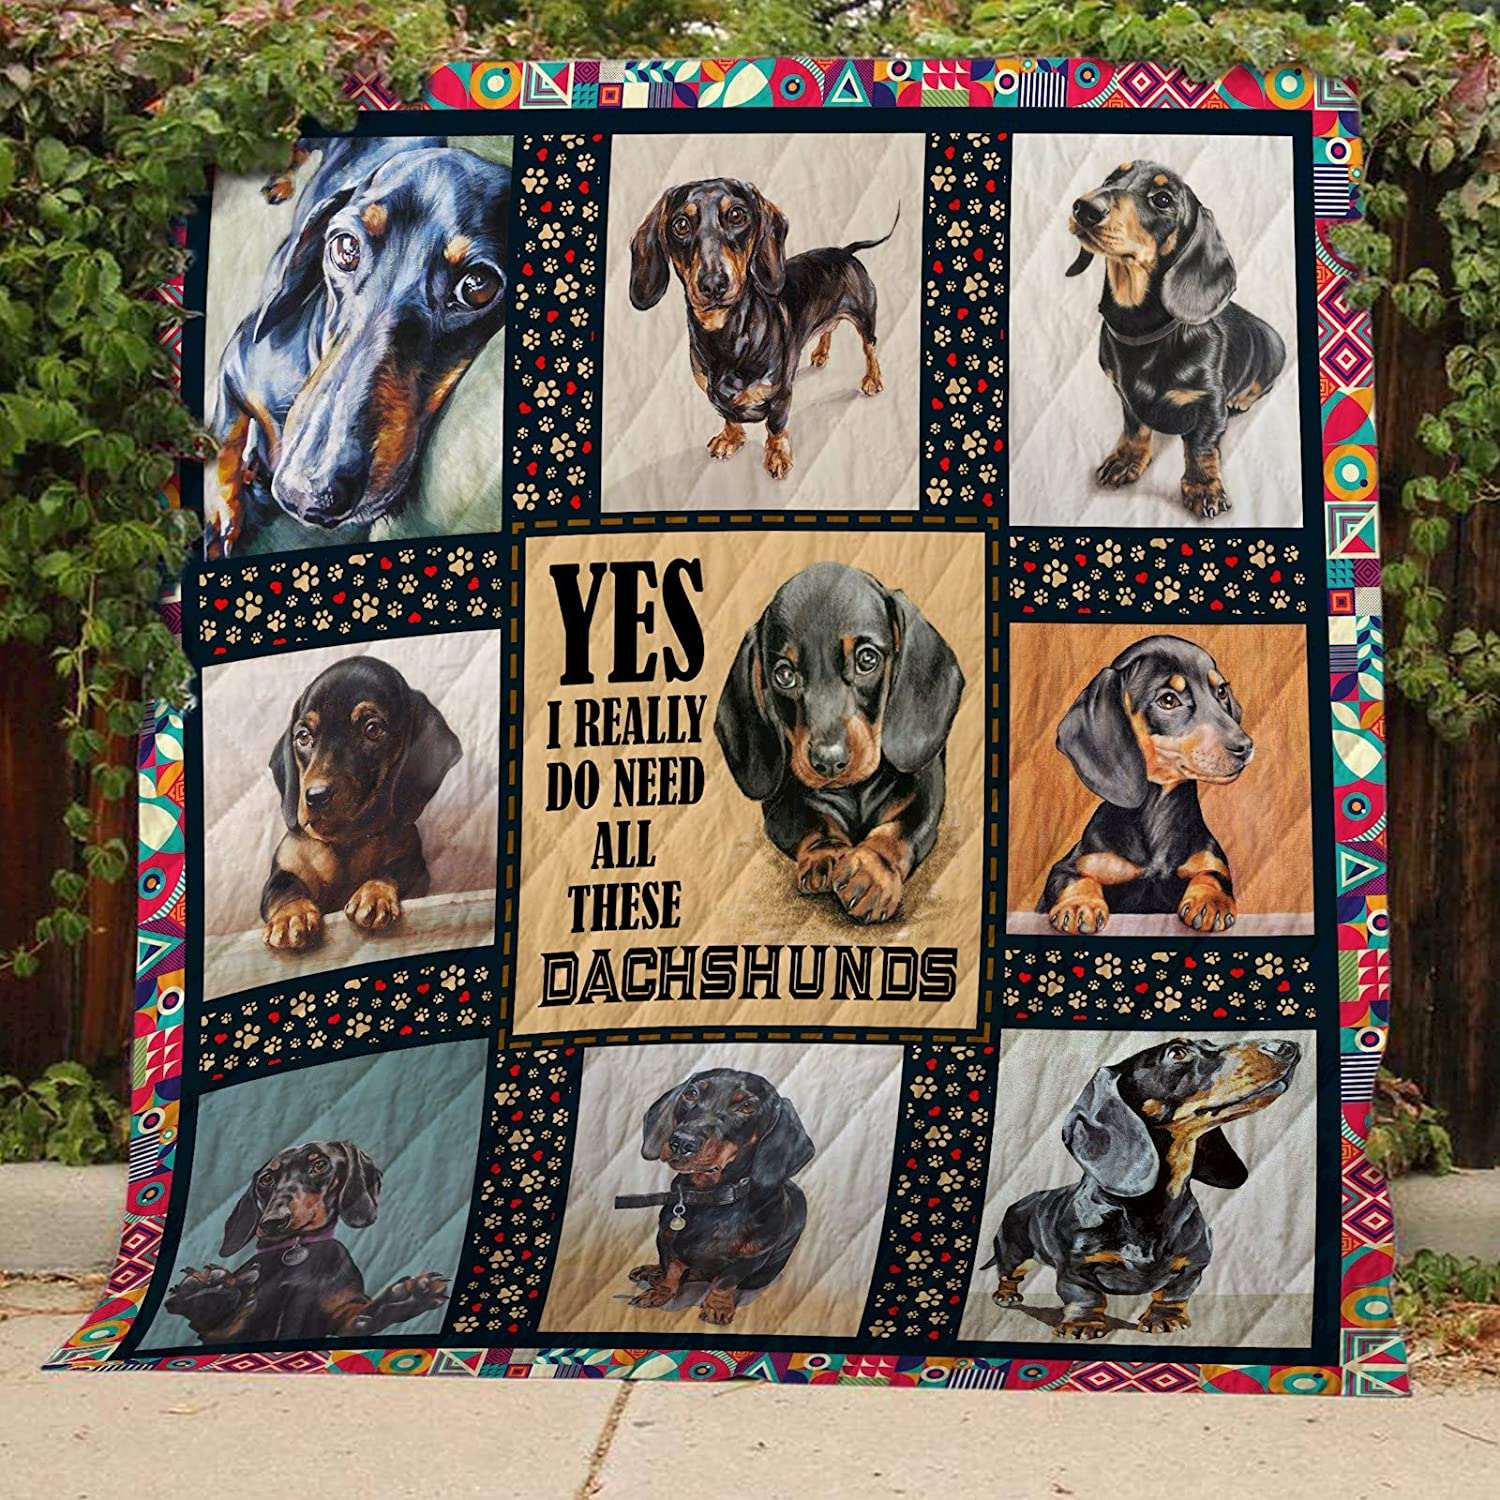 Dachshund Quilt TH390, Queen All-Season Quilts Comforters with Reversible Cotton King Queen Twin Size - Best Decorative Quilts-Unique Quilted for Gifts